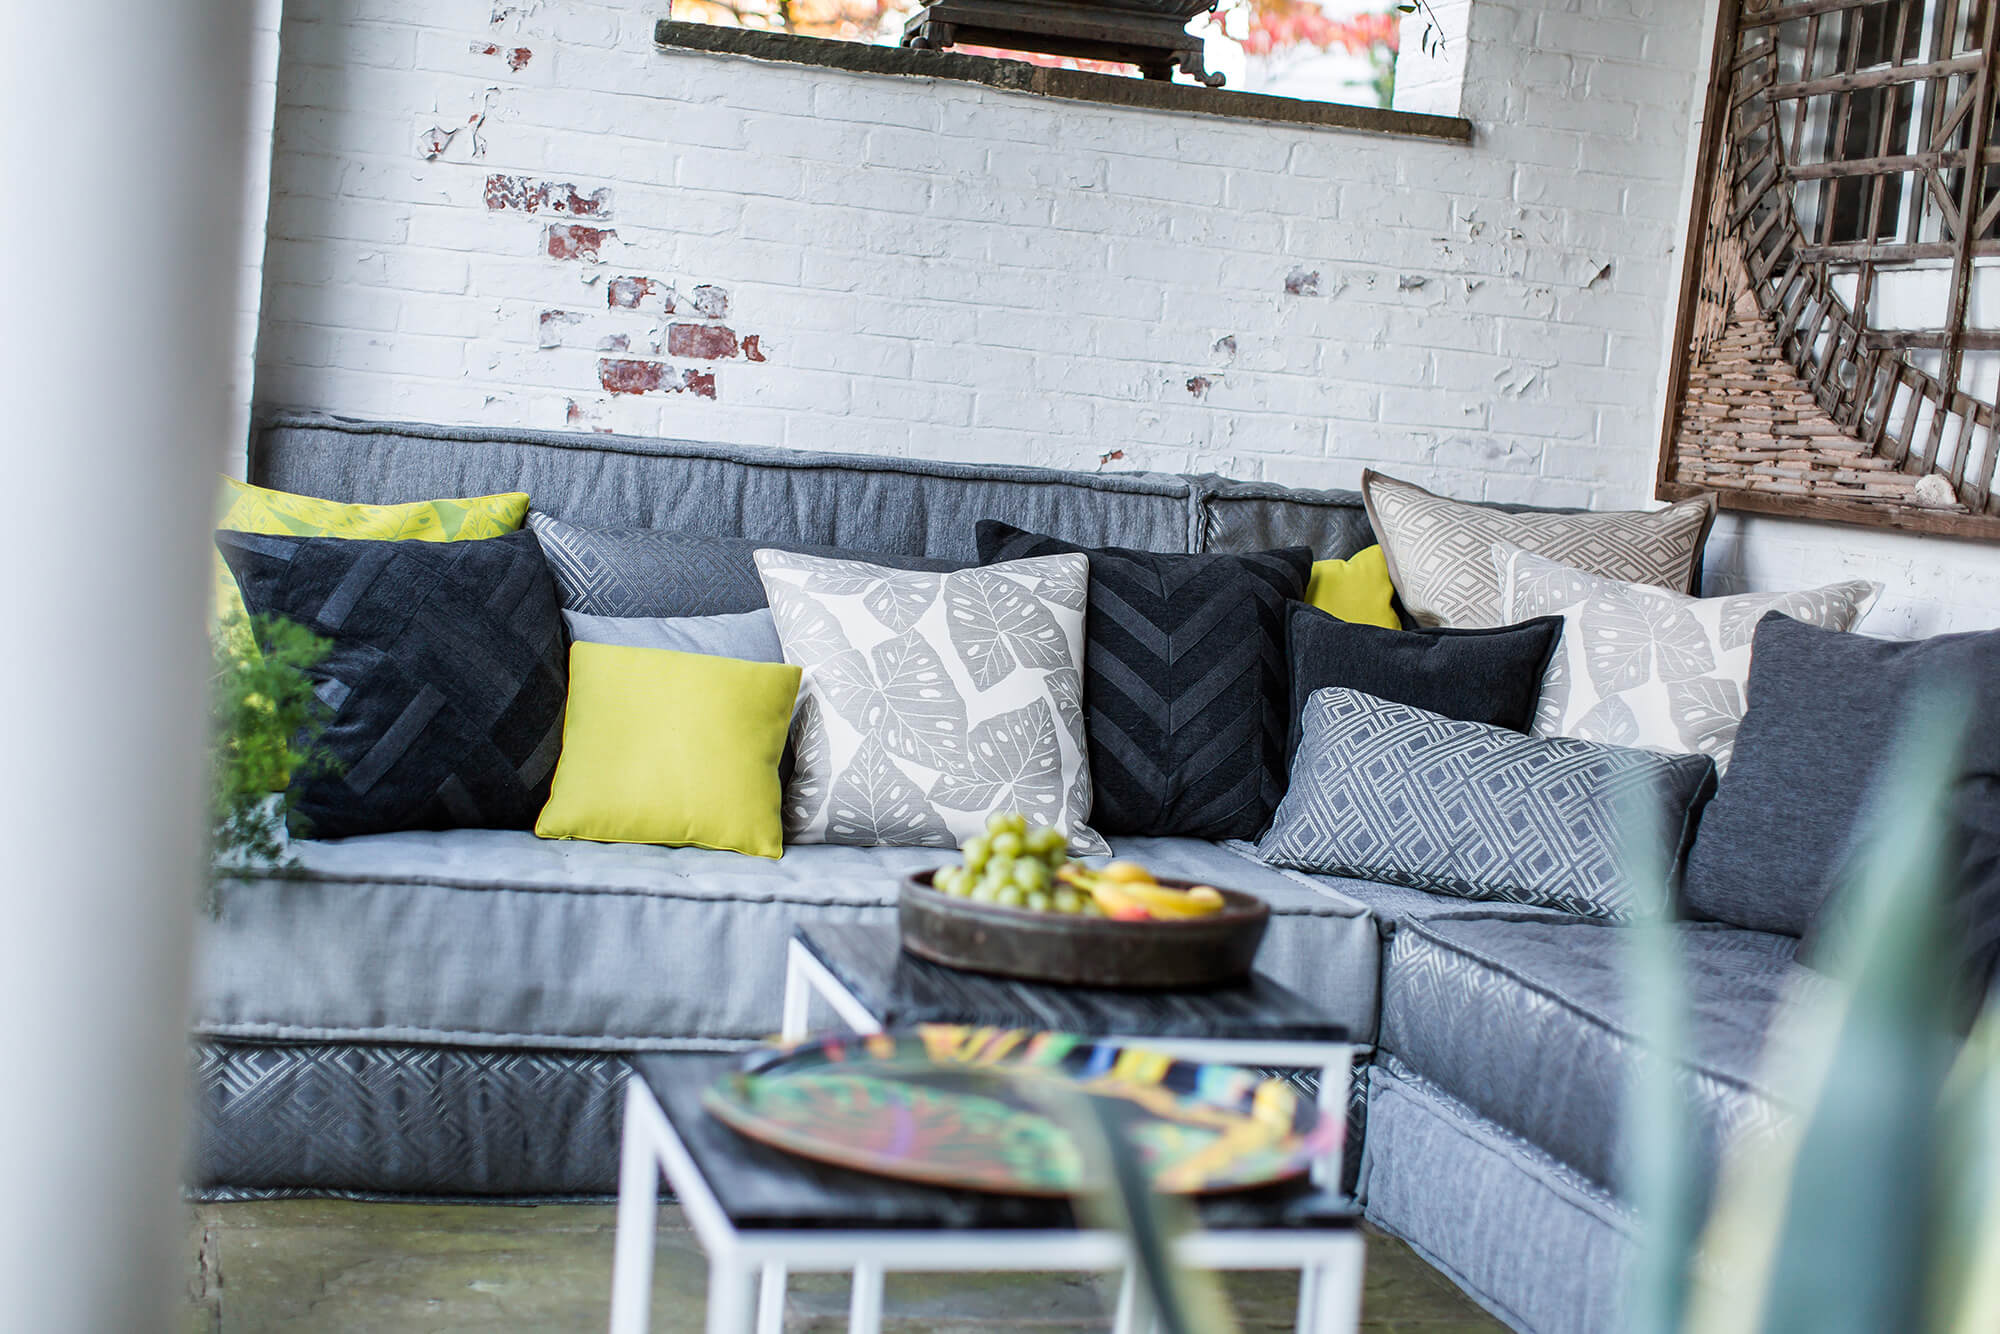 green cushions living room furniture with good back support fabrics for the home indoor outdoor sunbrella sofa grey covered in many pillows and some to add